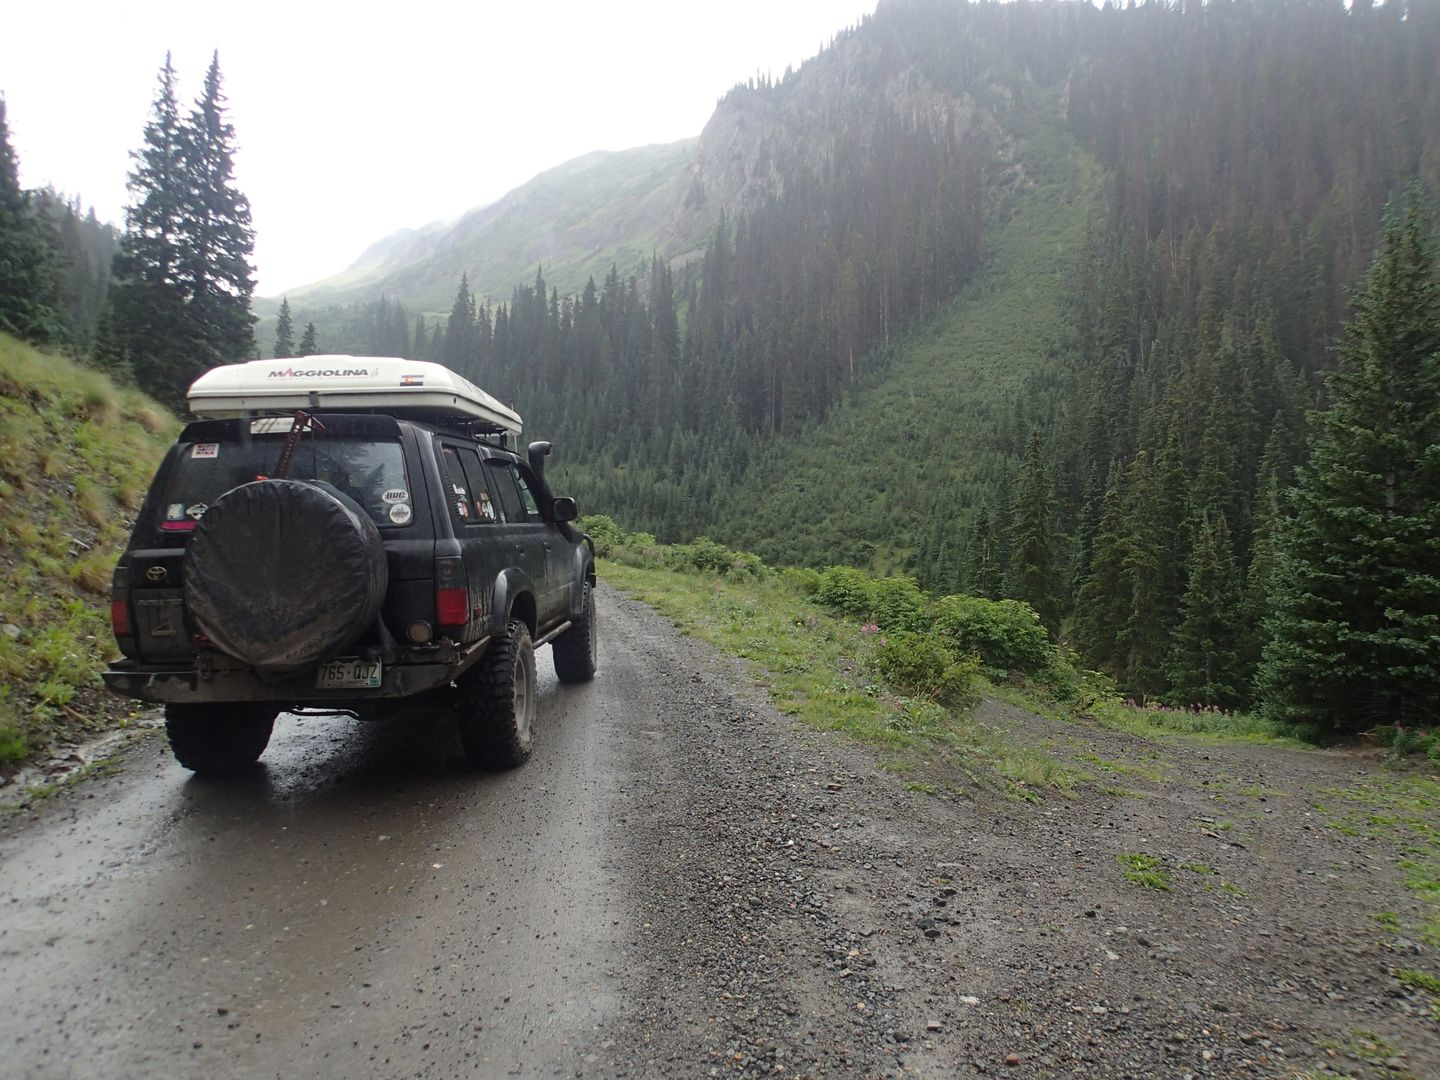 Stony Pass - Waypoint 8: Go Uphill and Unknown Road